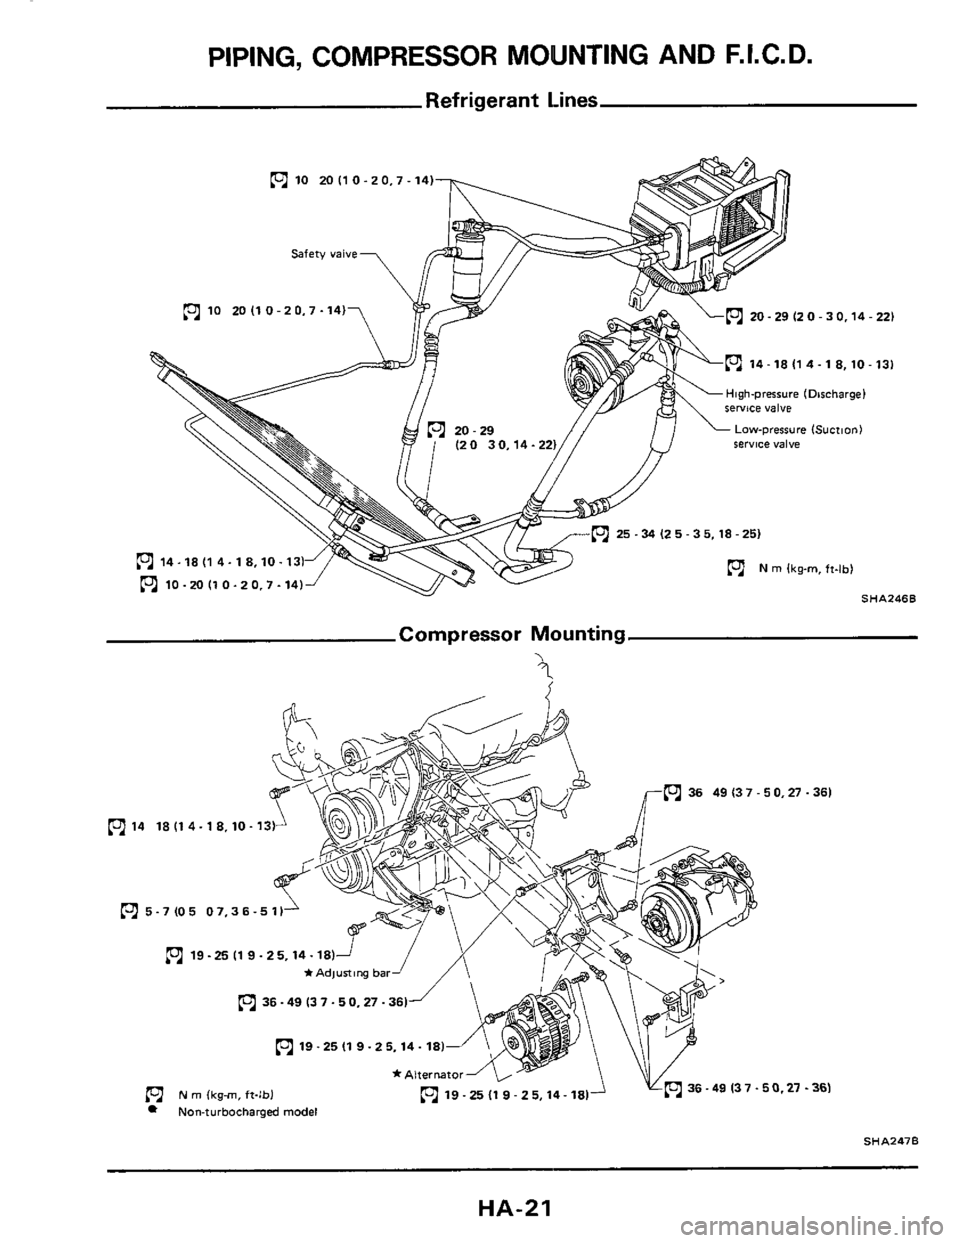 "NISSAN 300ZX 1984 Z31 Heather And Air Conditioner Owners Manual PIPING, COMPRESSOR  MOUNTING AND F.I.C.D.  Refrigerant  Lines  10 20110-20.7-14)  Safety  valve  Lm 20- 29 (2 0 - 30.14 - 221  m 14 - 18 I1 4.1  8,lO - 131  20 - 29 Low-prerrure (S""Ctl0"")  fYm 1 ("